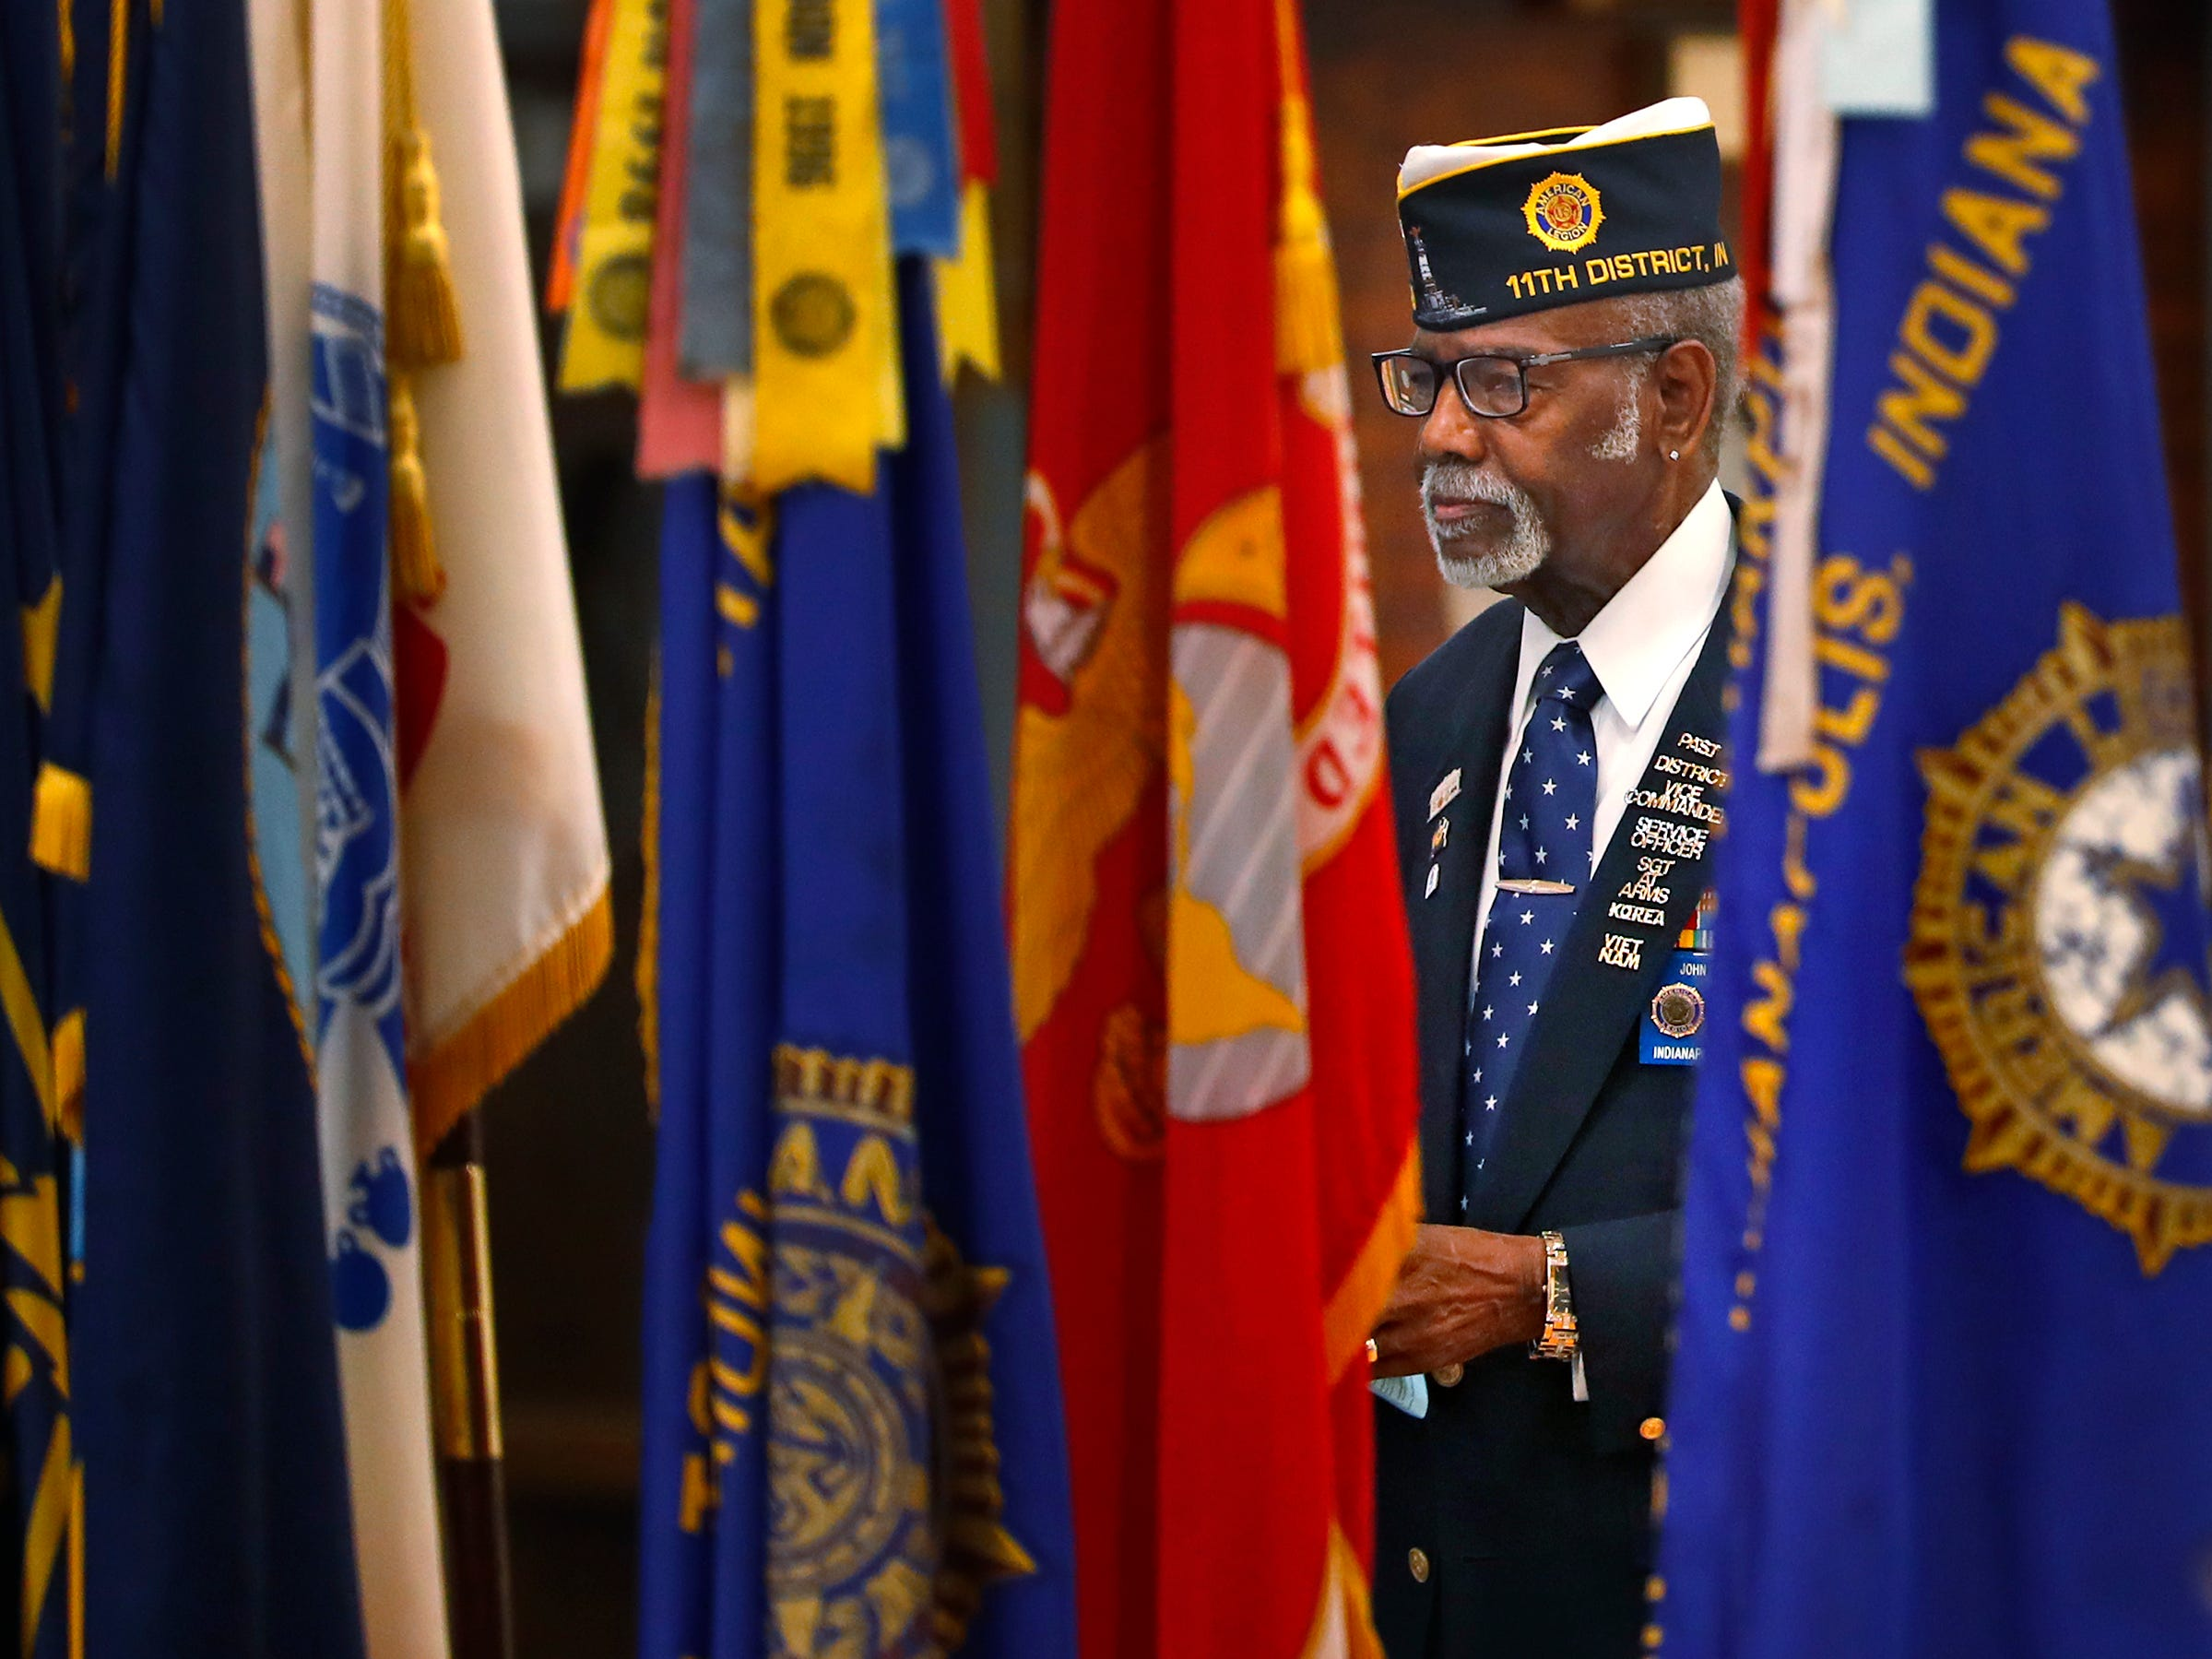 American Legion Post 249's John Thomas watches through flags, during the Pearl Harbor Day Remembrance at Riverside High School, Friday, Dec. 7, 2018.  The former Heslar Naval Armory used to host the event to remember those who died and to honor those who survived in the Dec. 7, 1941 Japanese attack on Pearl Harbor which plunged the United States into World War II.